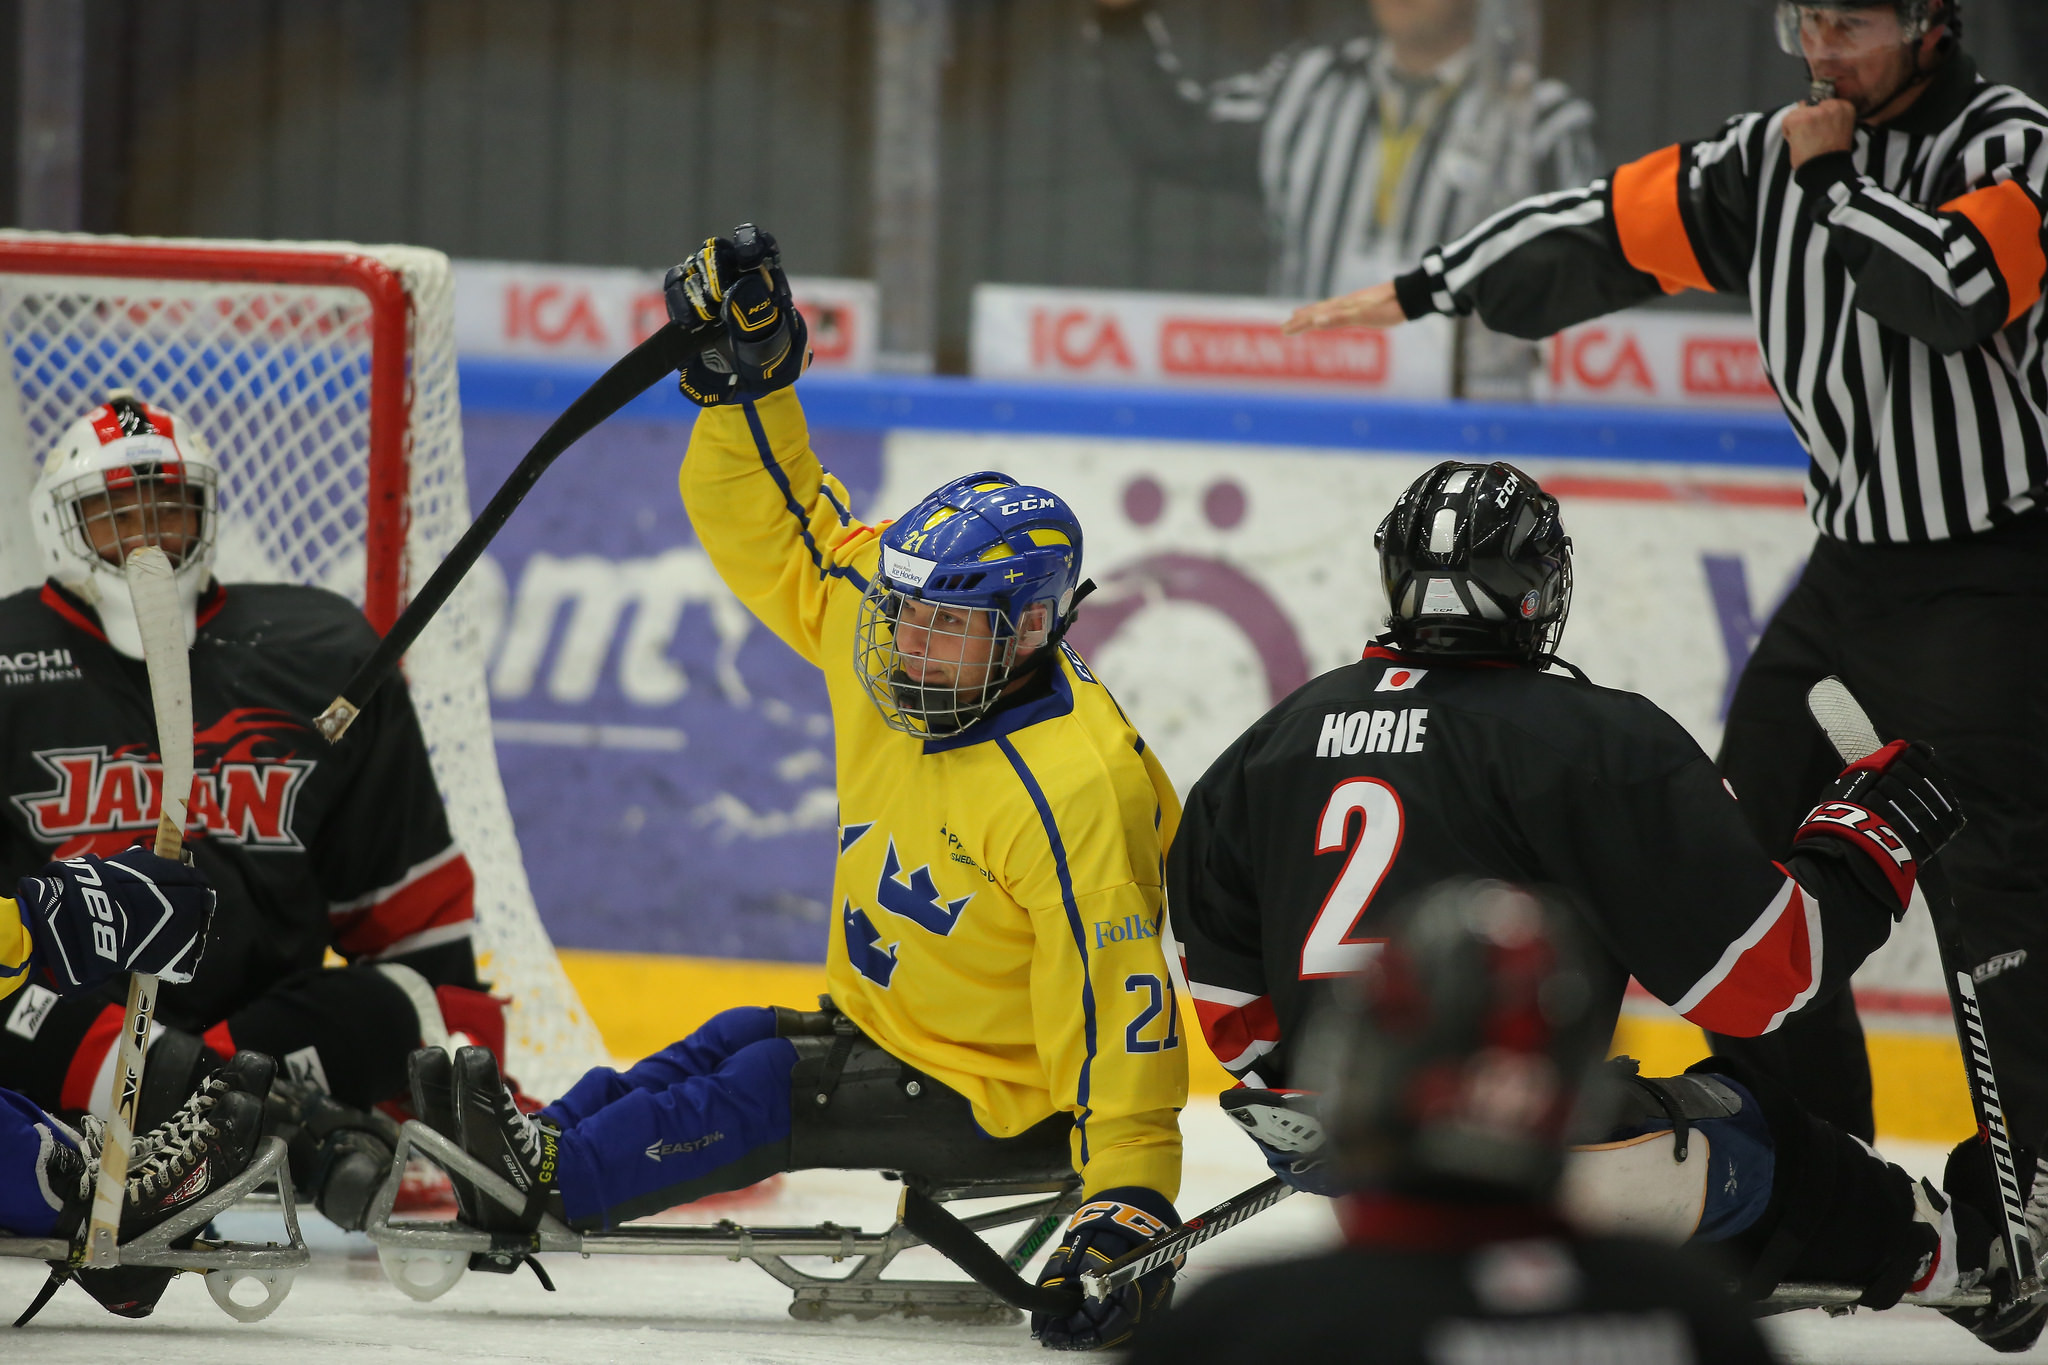 Japan stun hosts Sweden at World Para Ice Hockey Qualification Tournament